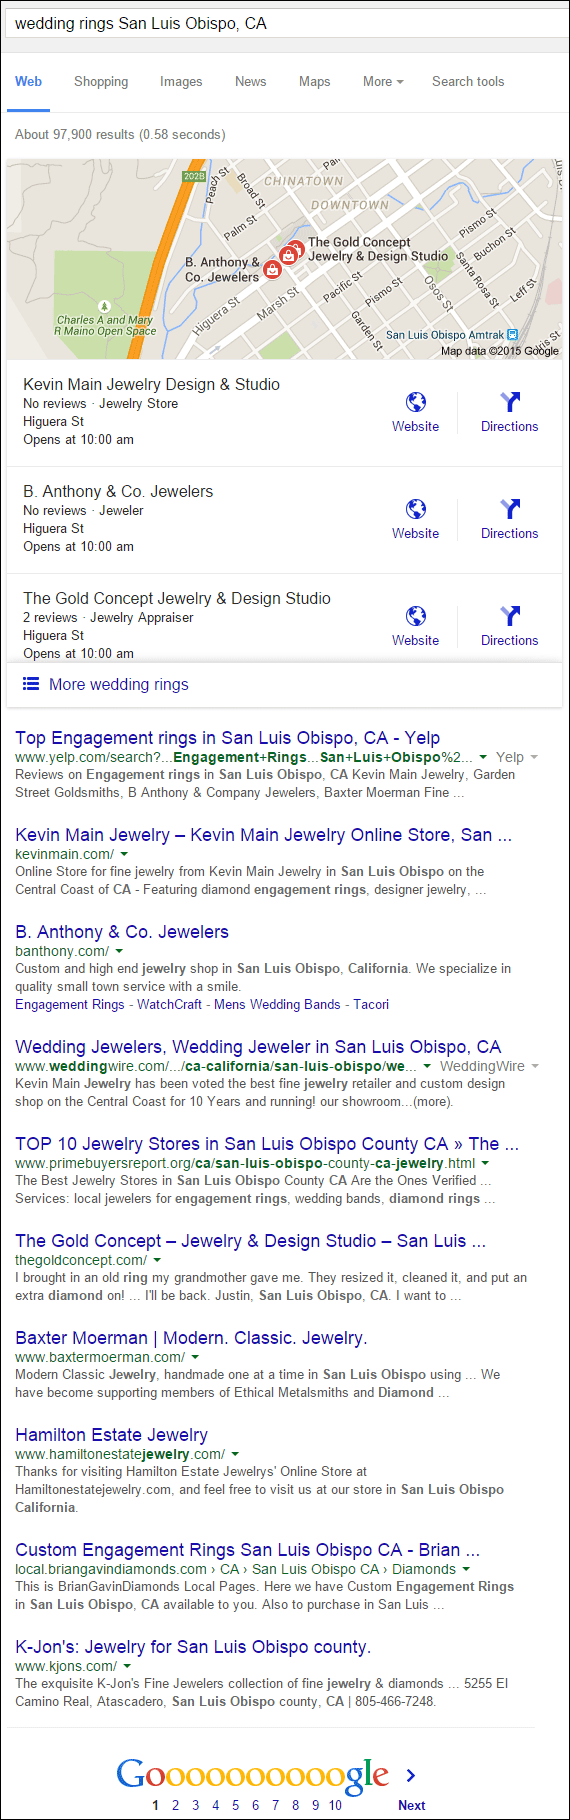 Kevin Main Jewelry Website Review 1330-wedding-rings-San-Luis-Obispo-CA-serp-92